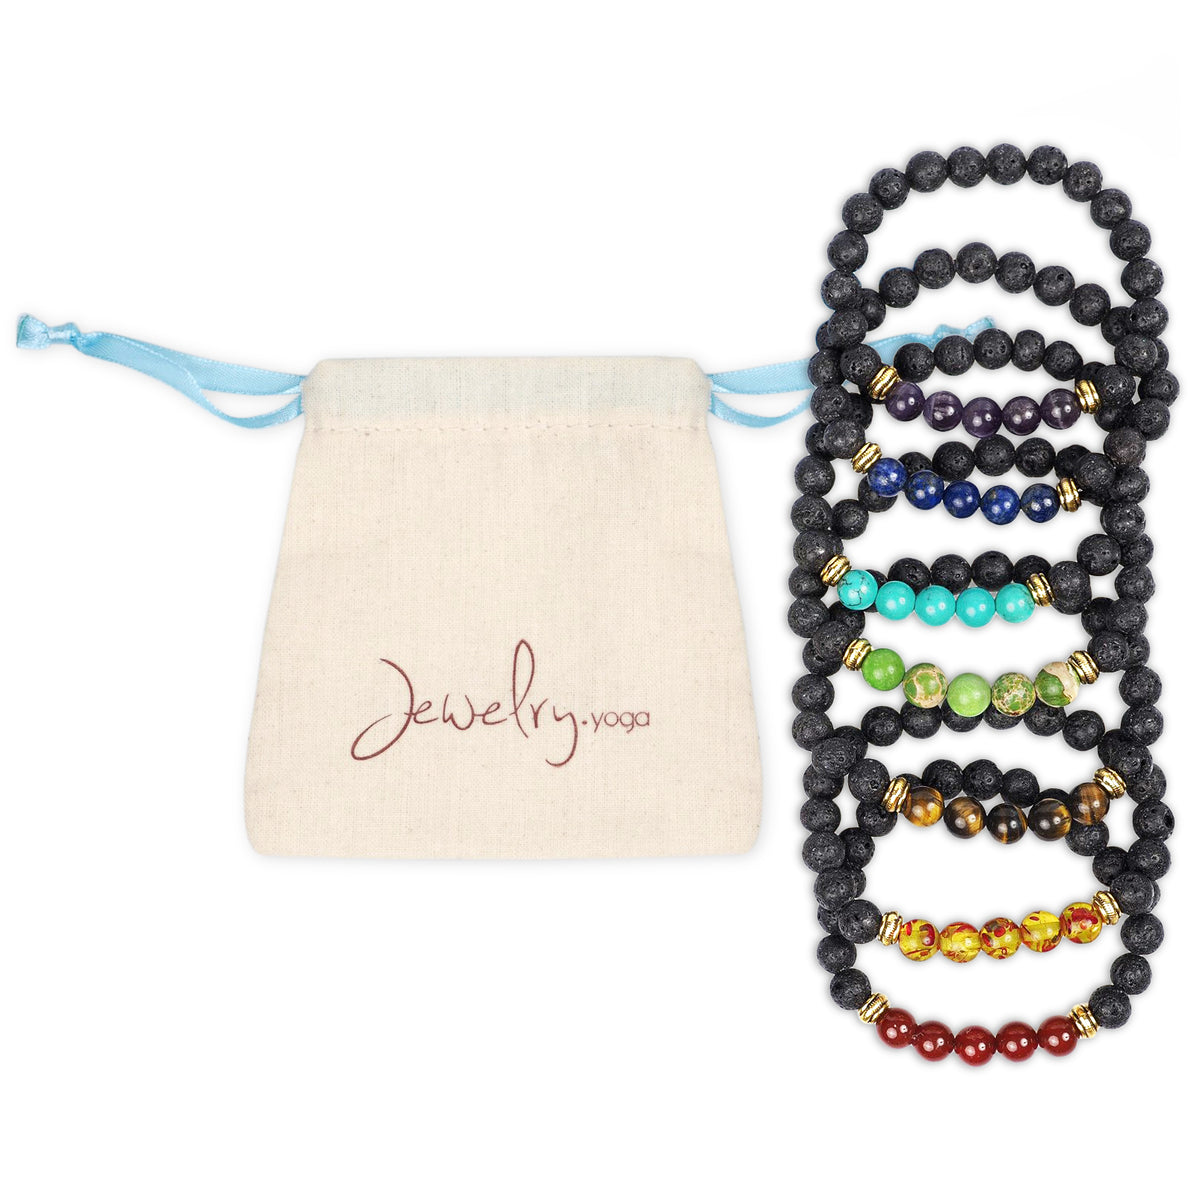 7 Chakra Bracelet Set with Lava and Authentic Stones